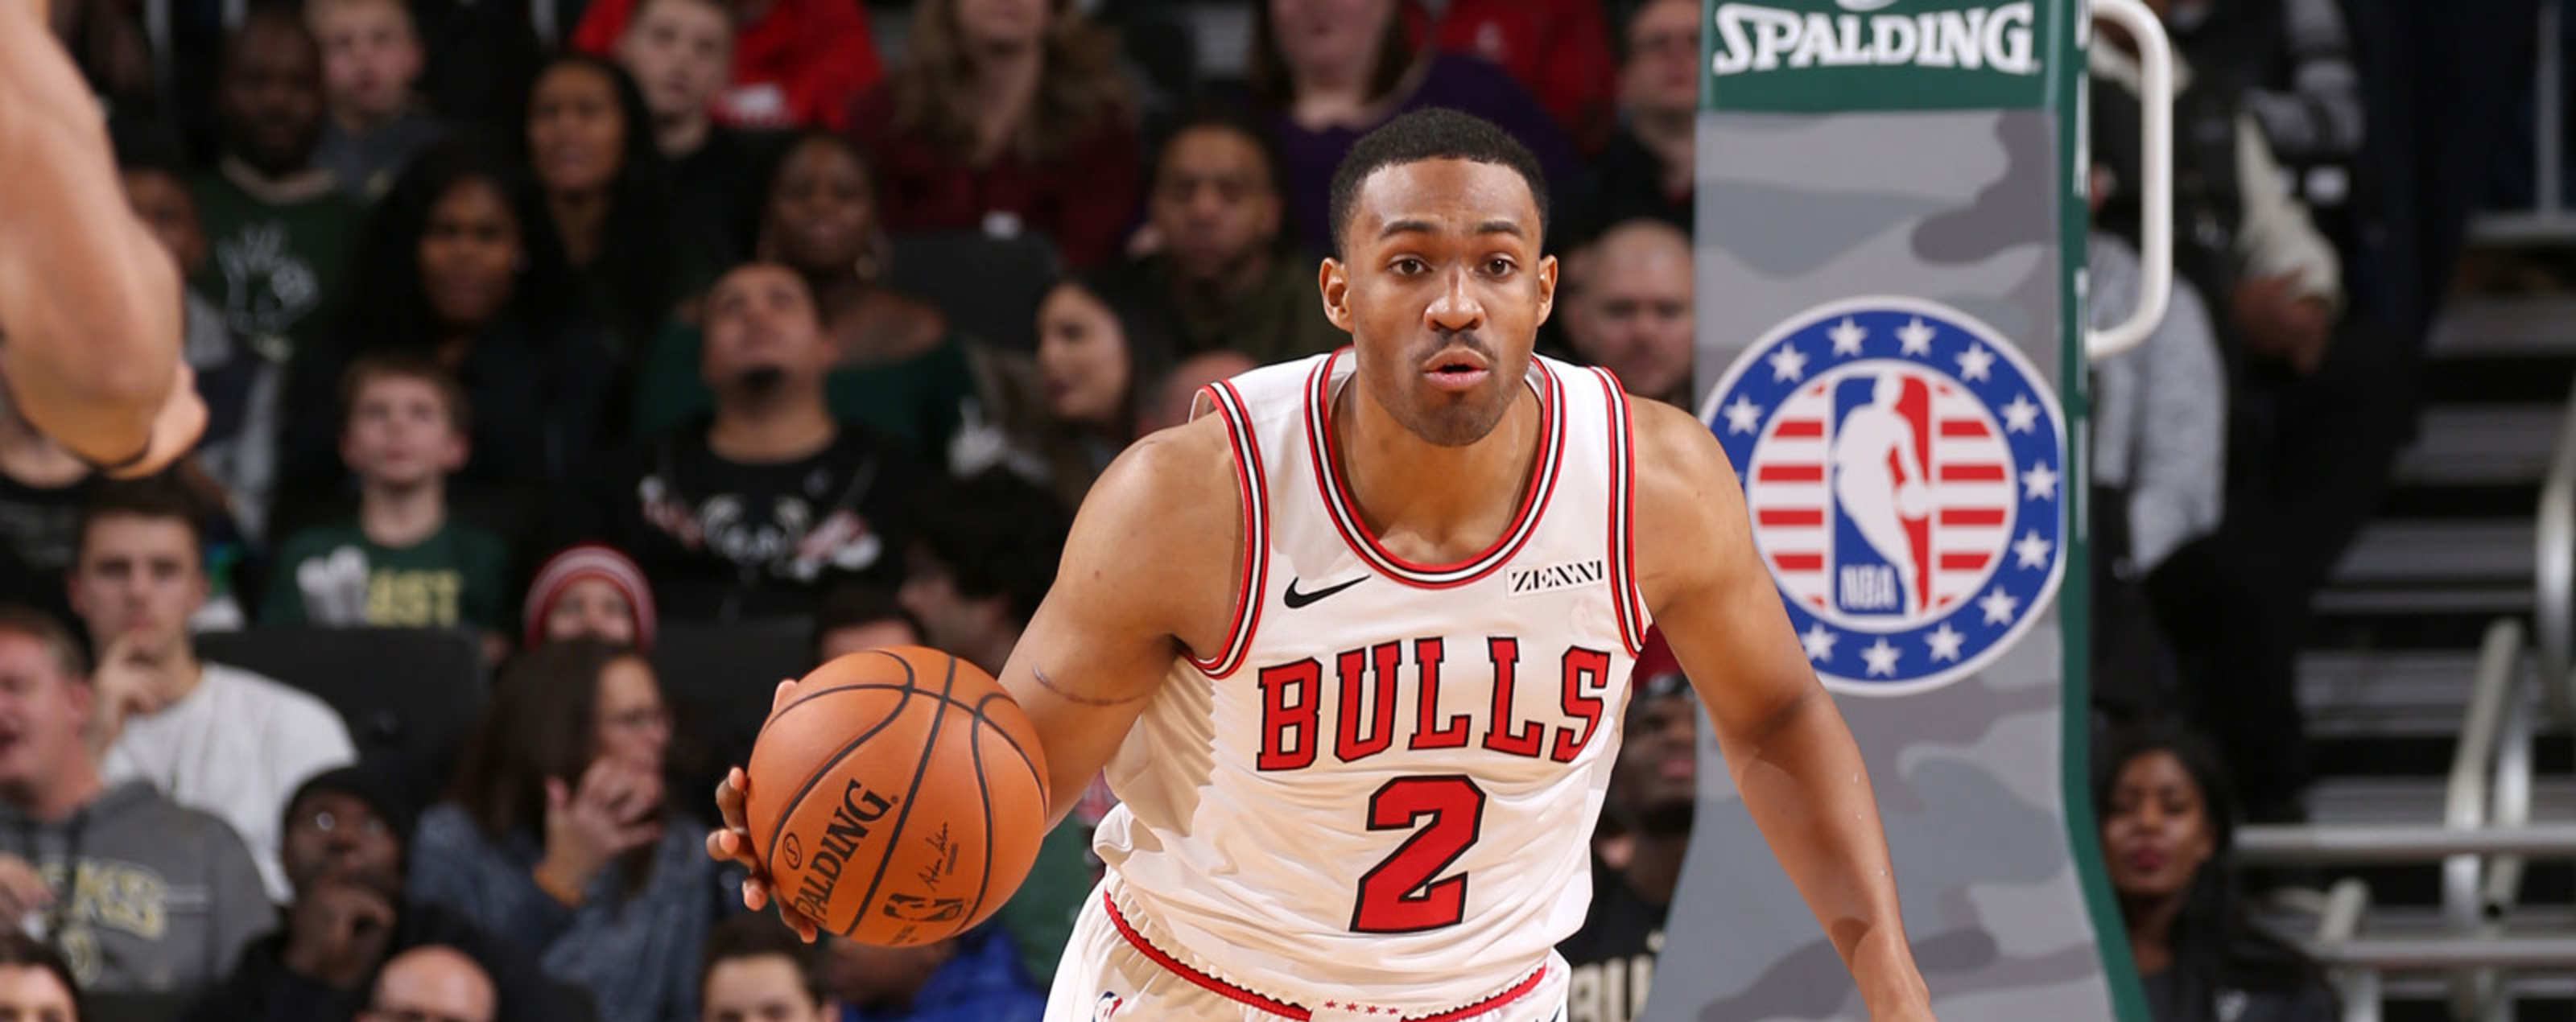 chuck's daily check in - 11.26.18 | chicago bulls